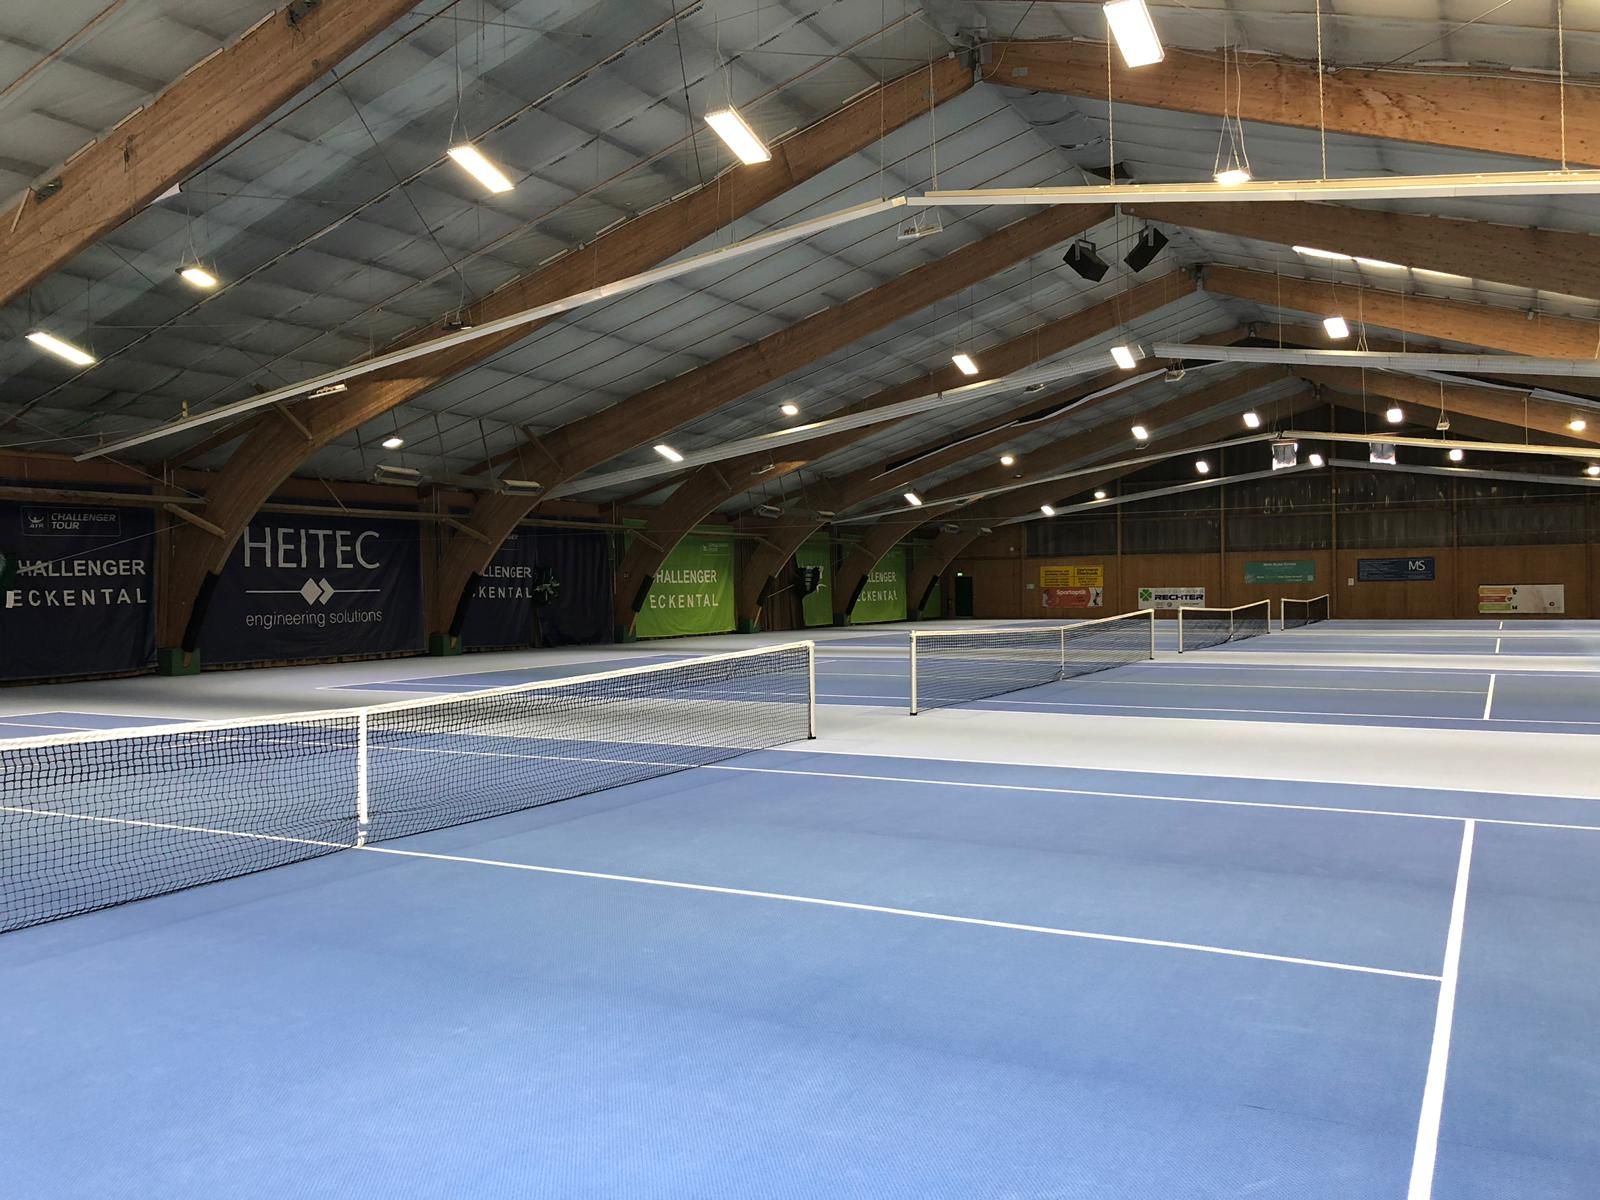 Eckental Tennis